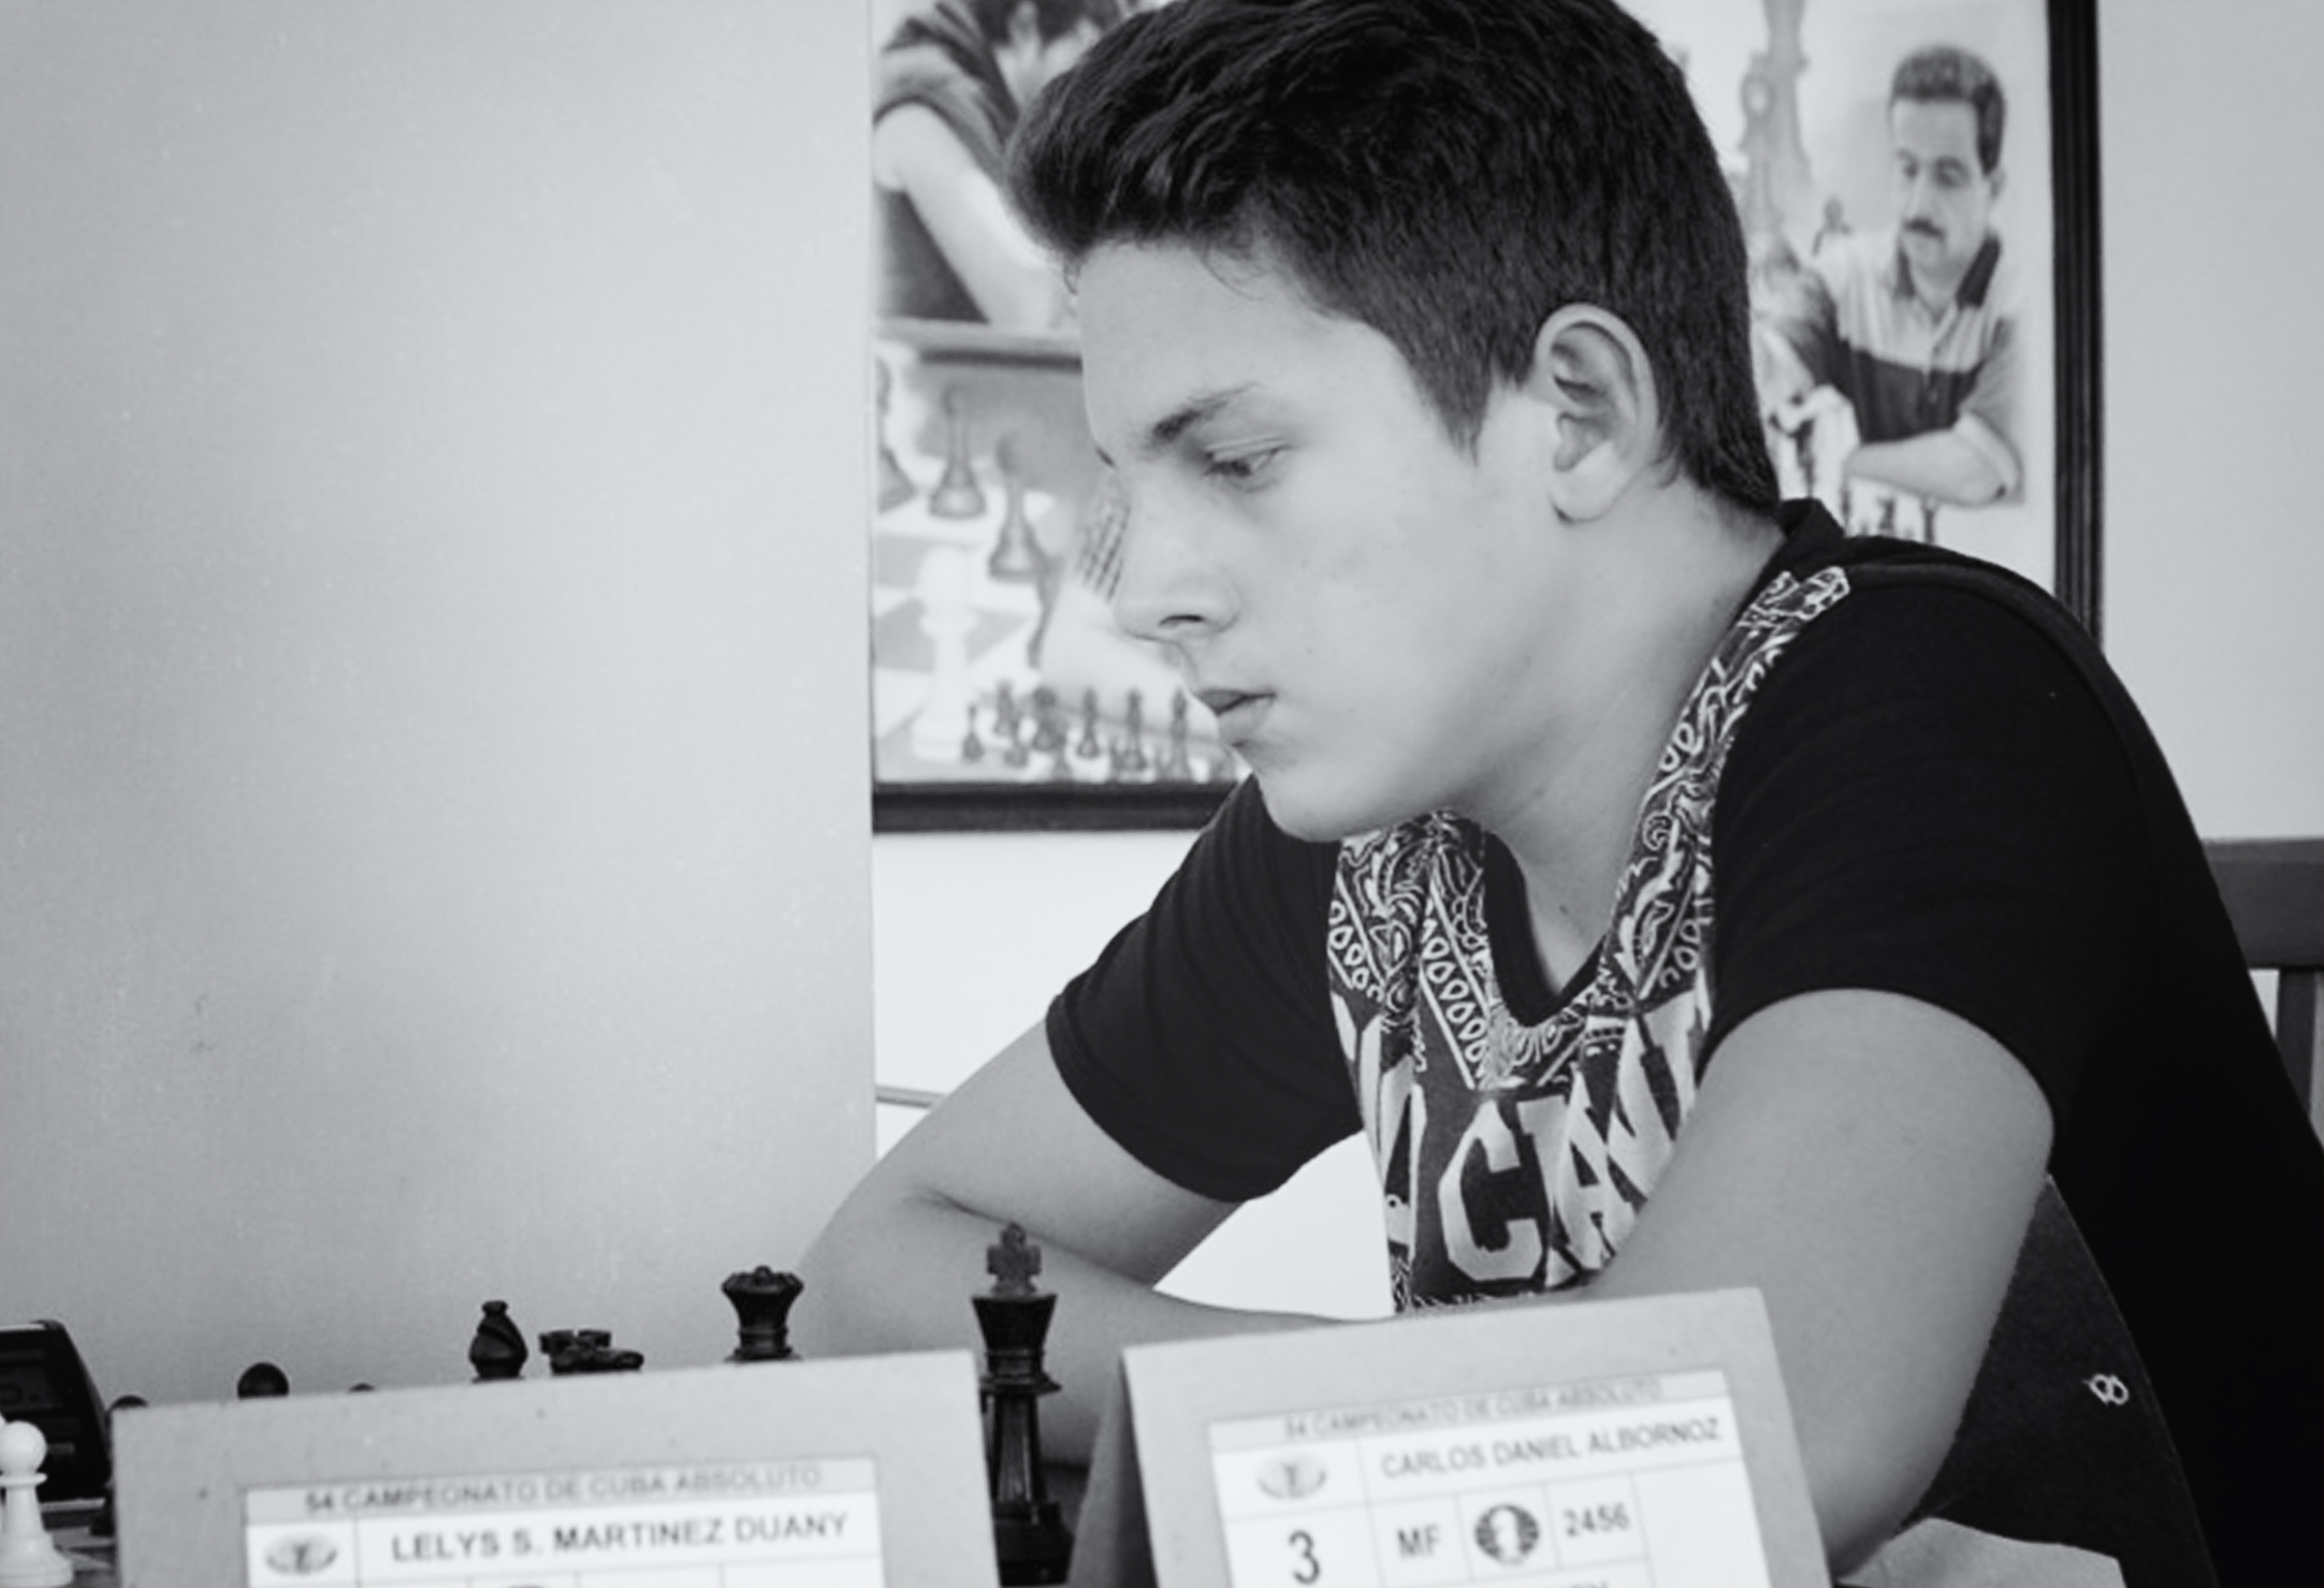 The Camagüey player Albornoz is placed 5th in Cuban chess ranking